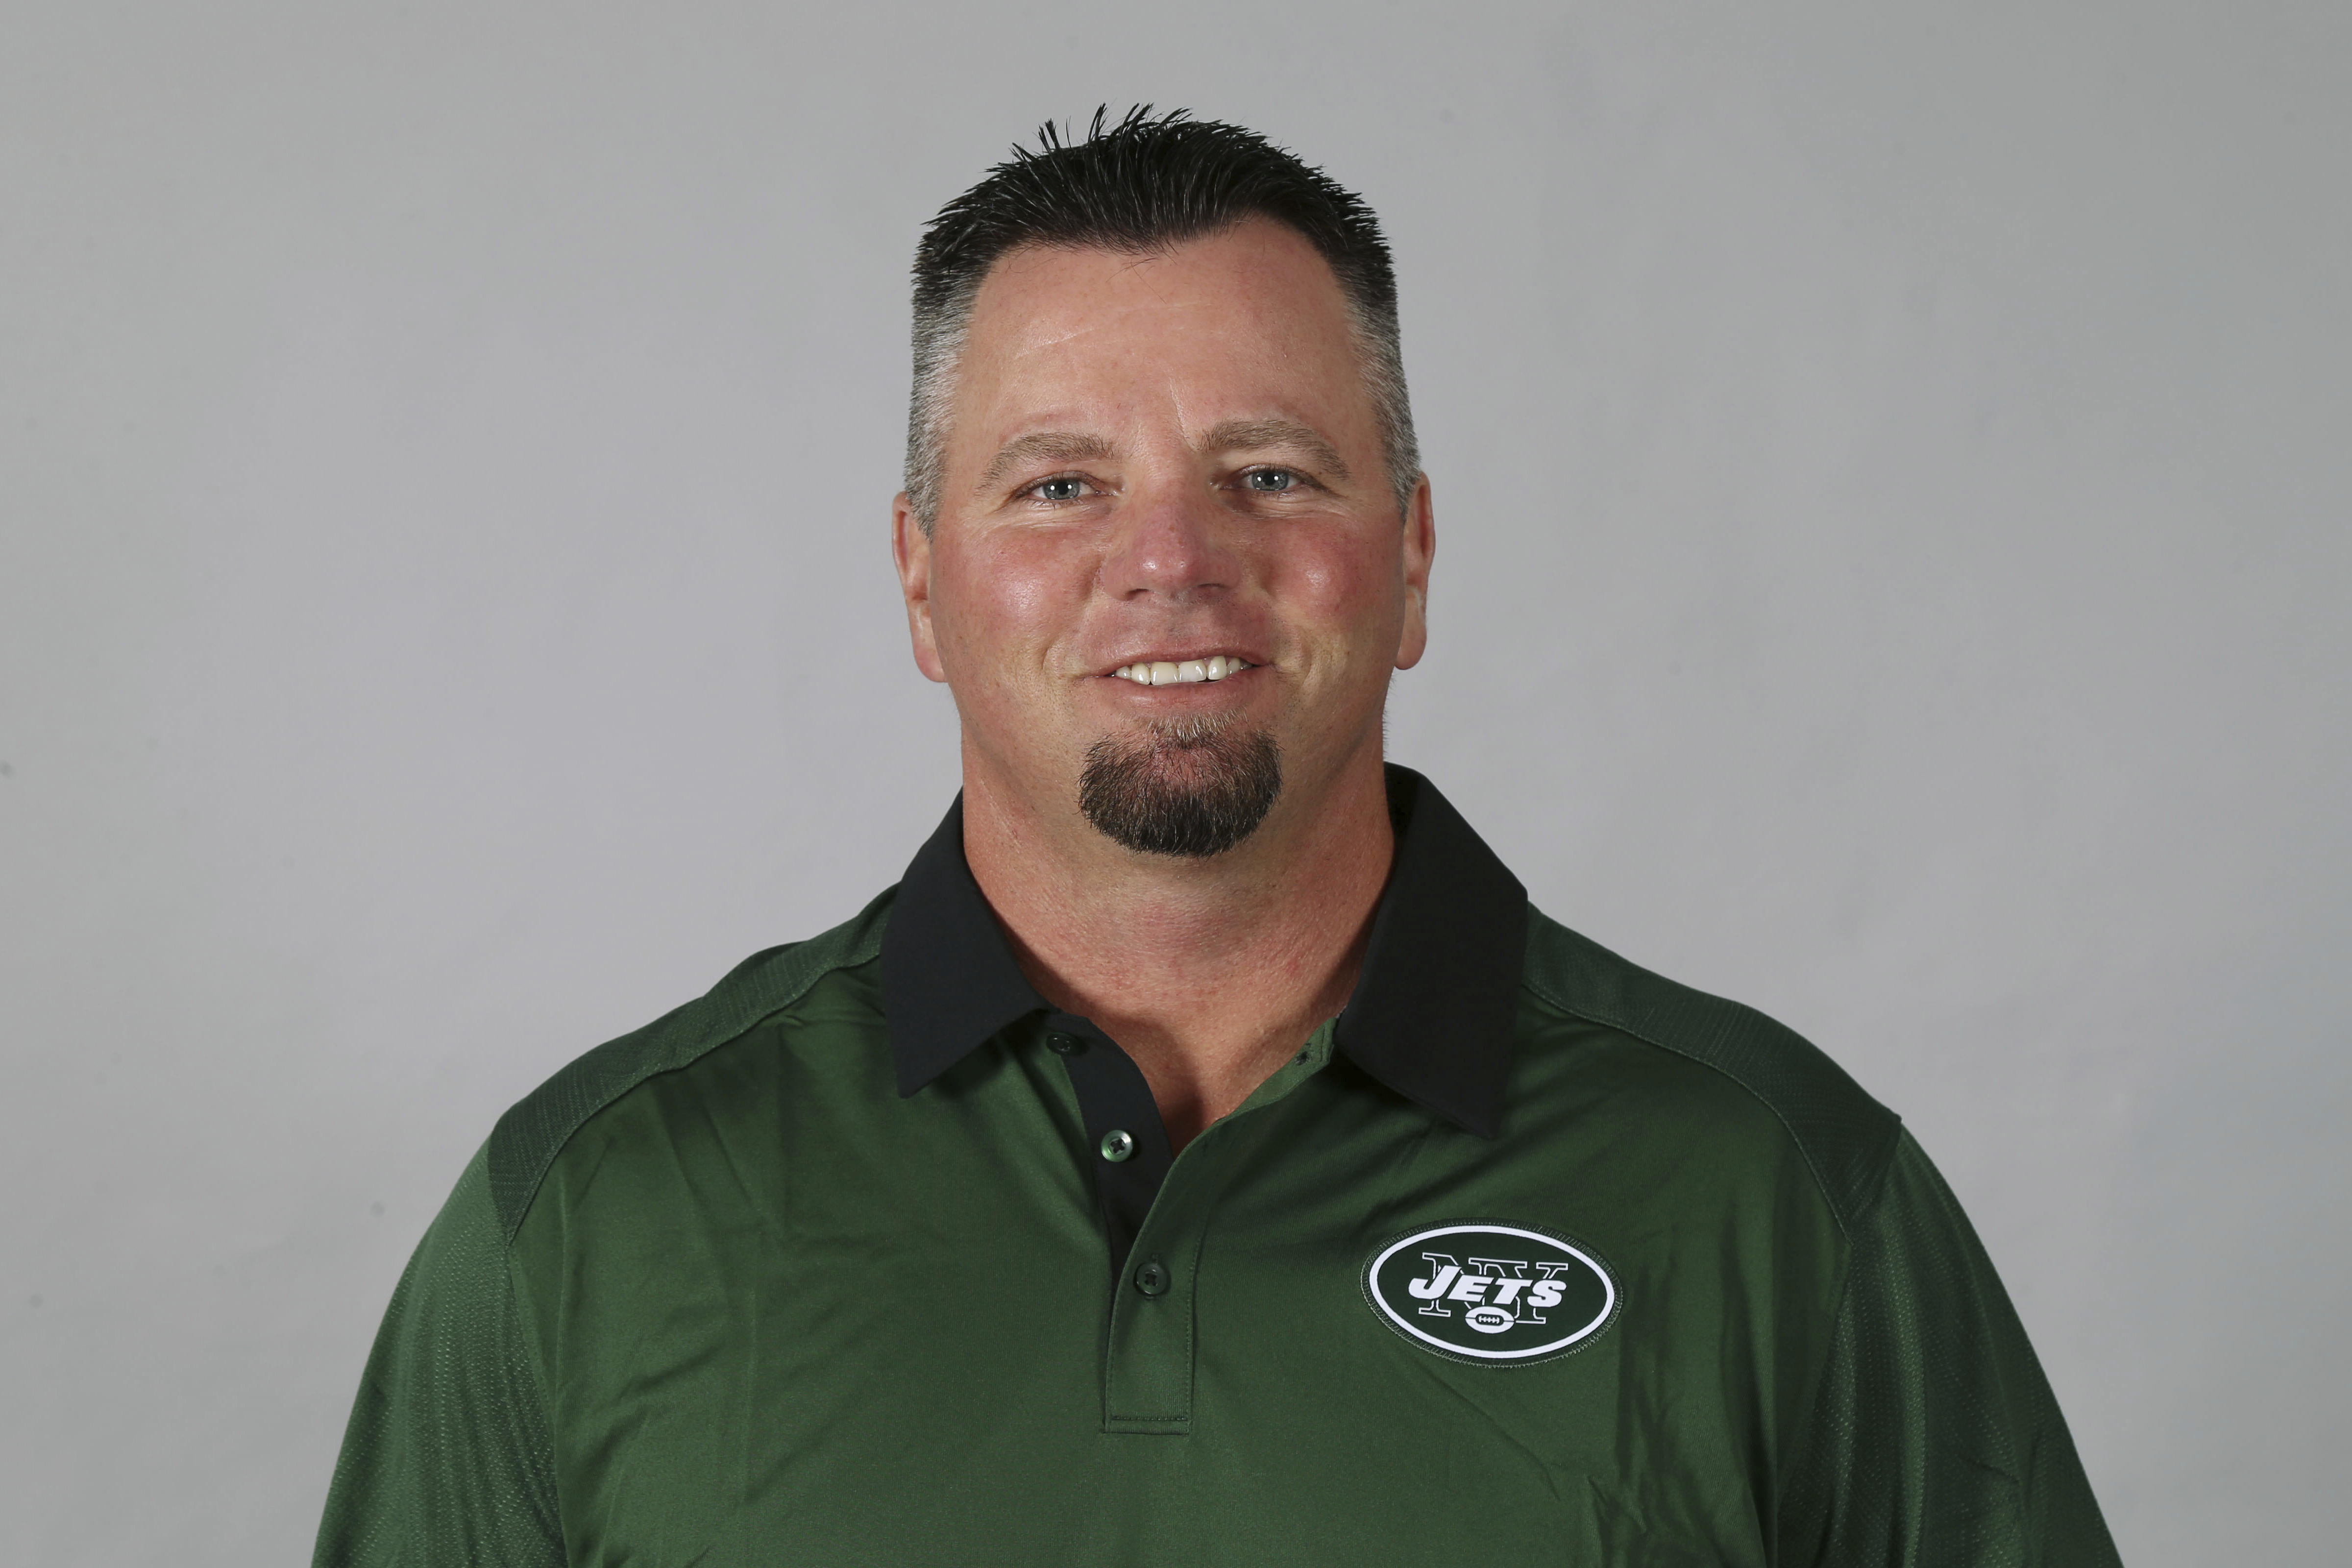 This 2016 photo shows Brant Boyer of the New York Jets NFL football team. The mistakes and missed opportunities have cost the New York Jets, and that has weighed heavily on Brant Boyer. His special teams unit is struggling through an especially bad year.